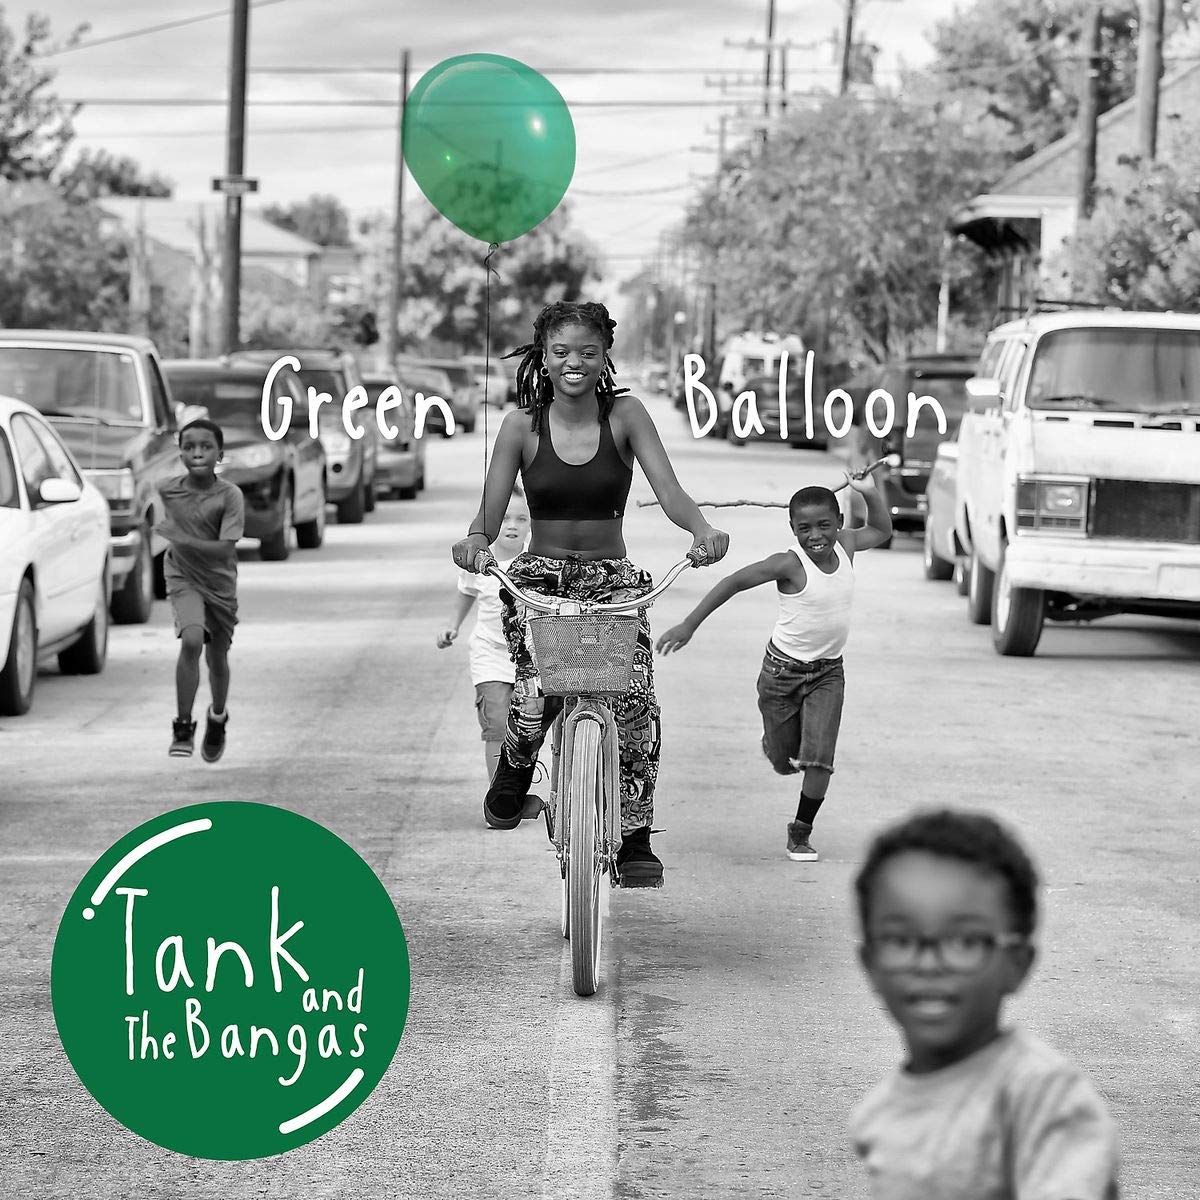 TANK AND THE BANGAS - Green Balloon cover